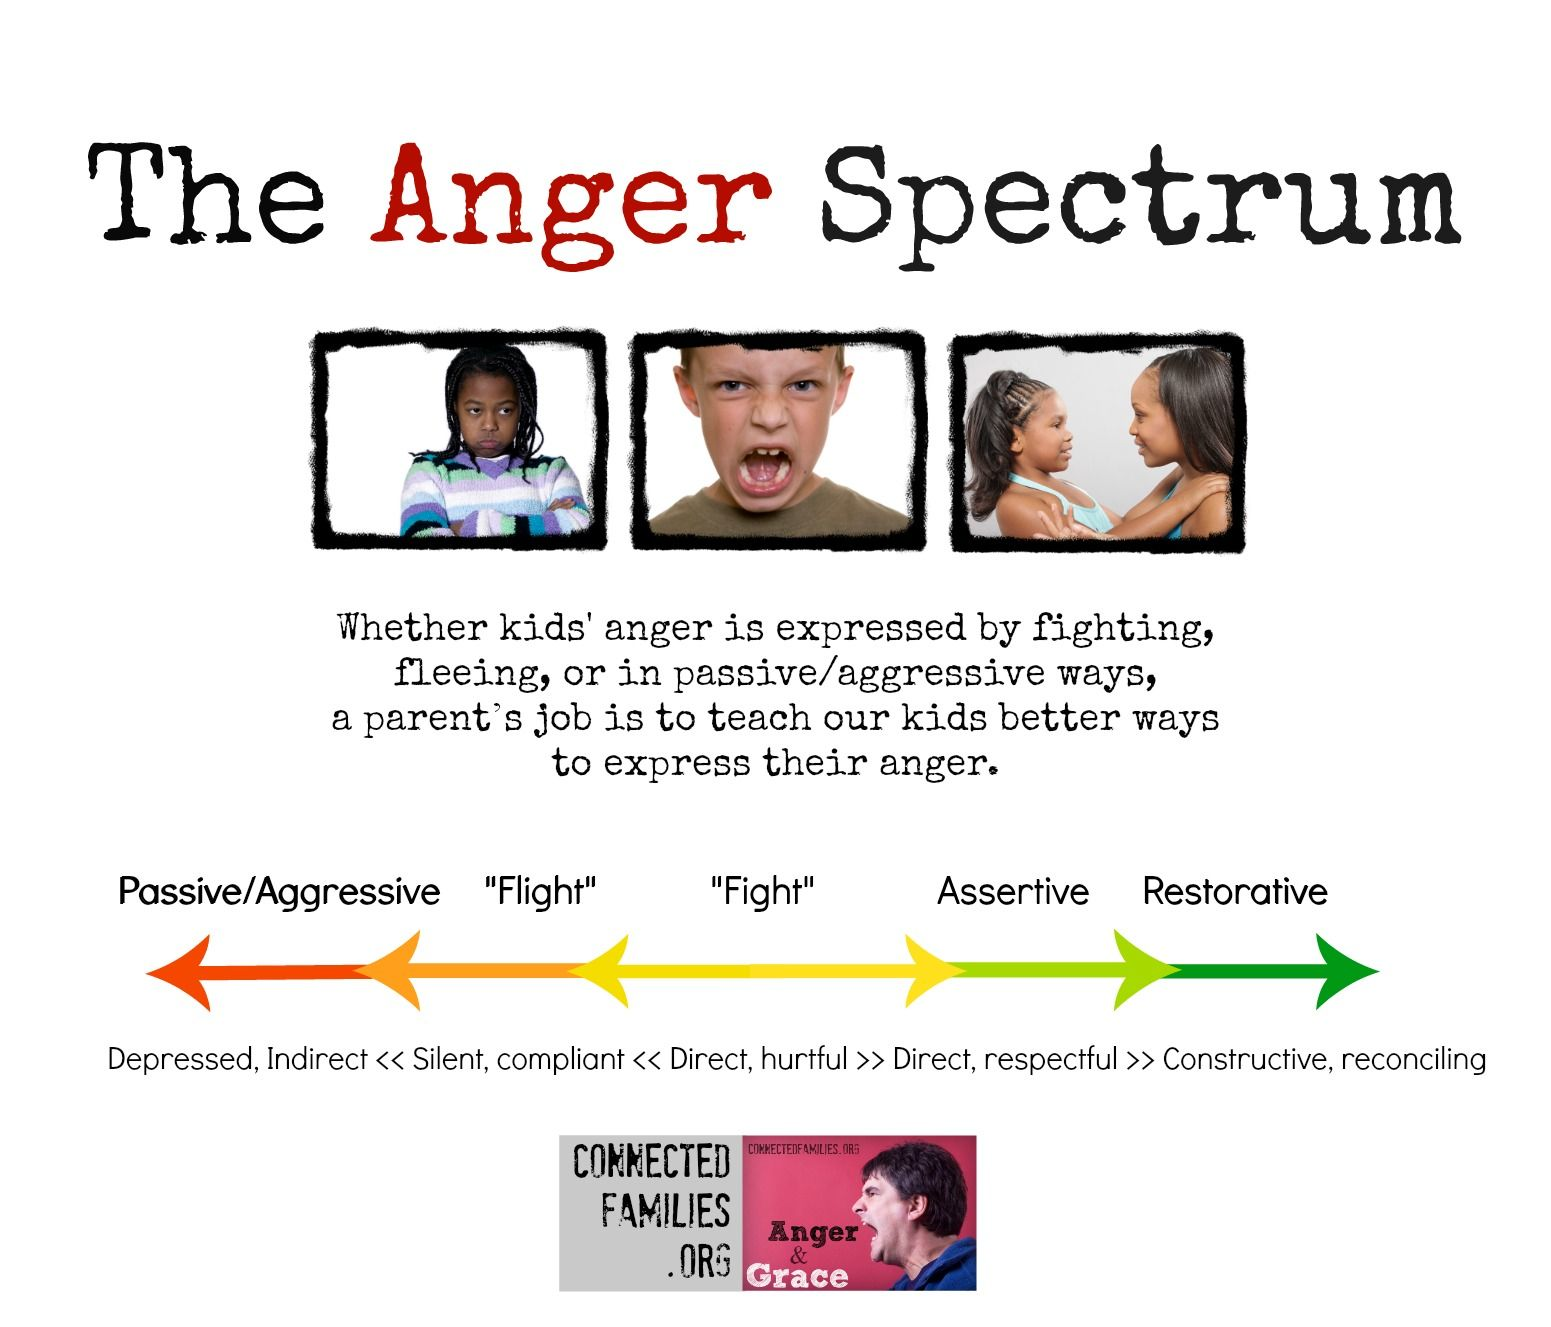 How Punishing Kids Anger Could Make It Worse